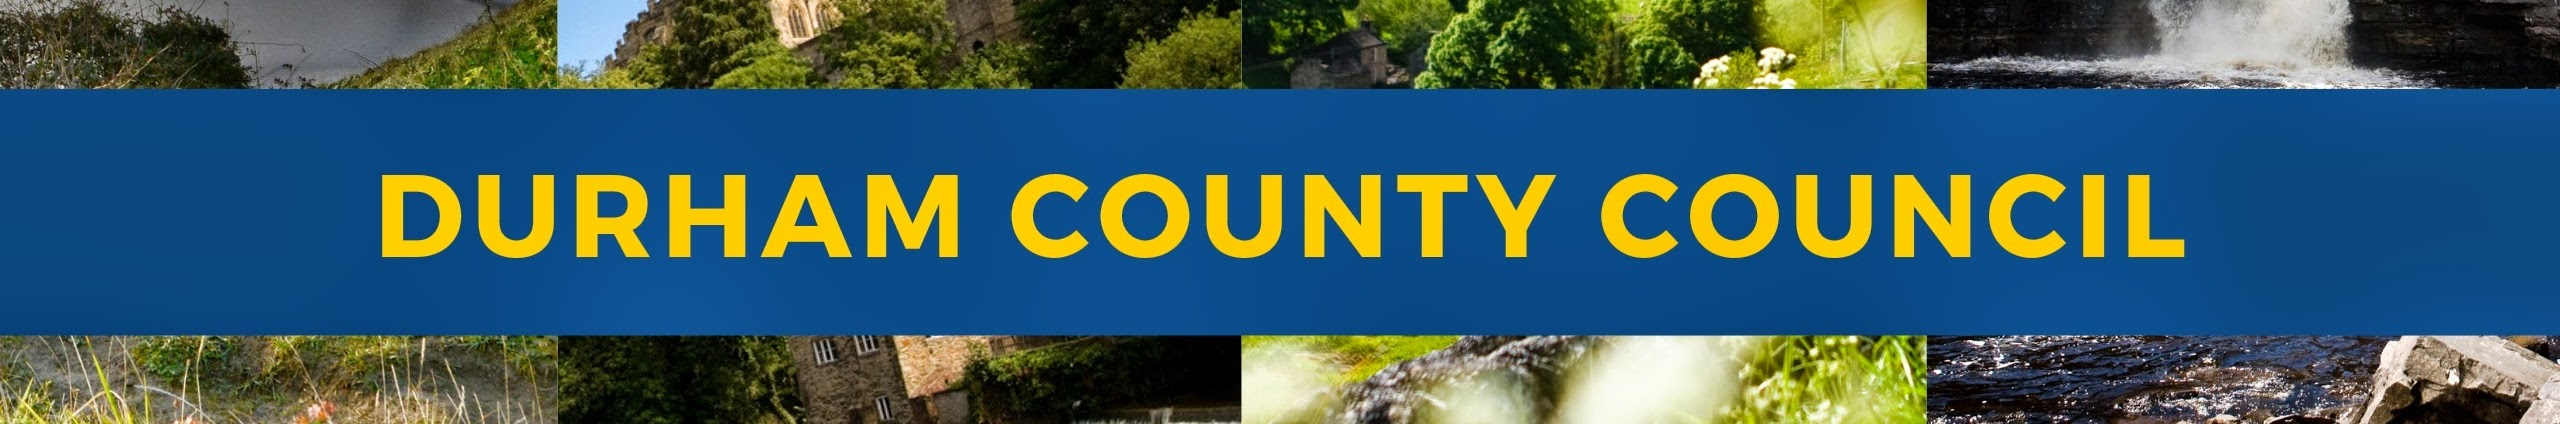 Durham County Council - YouTube